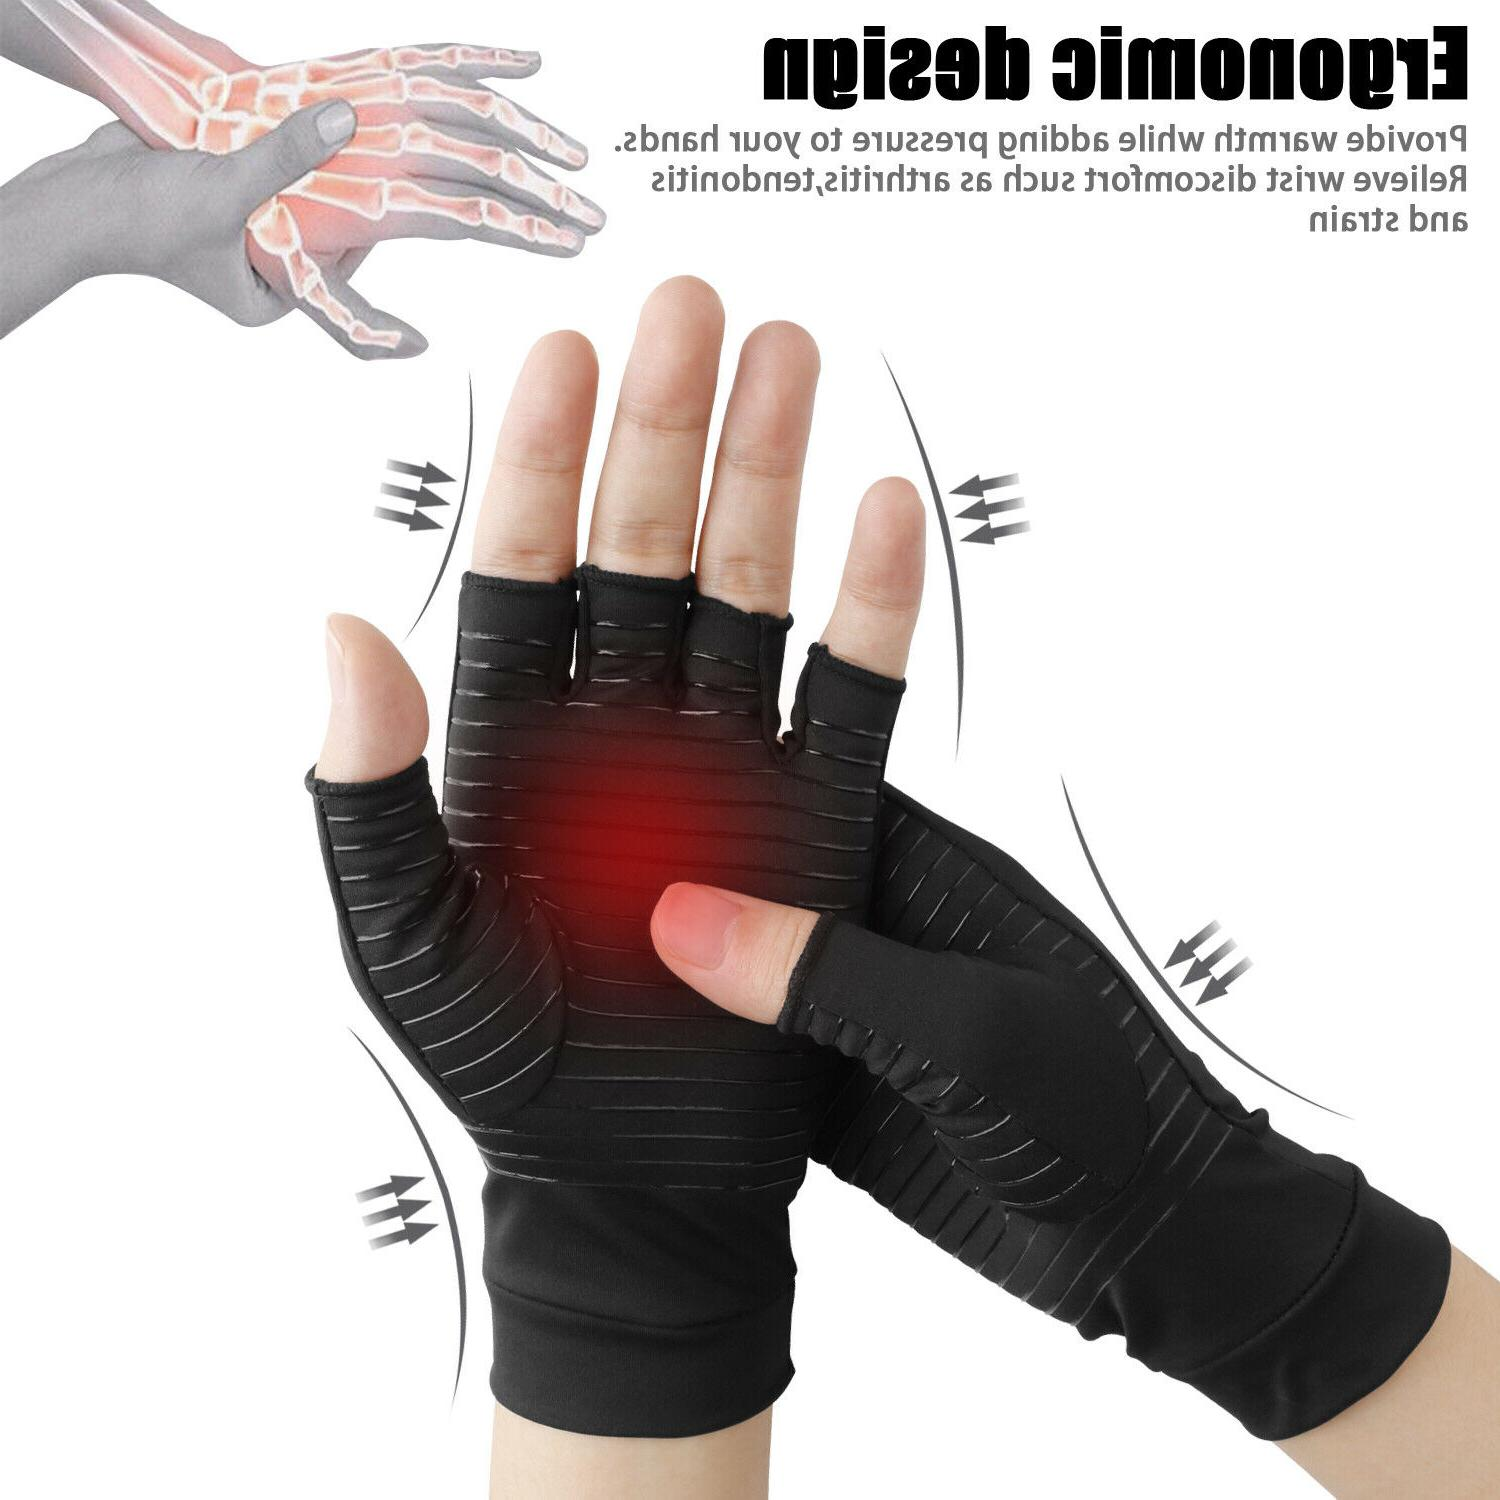 copper fit compression gloves arthritis carpal tunnel